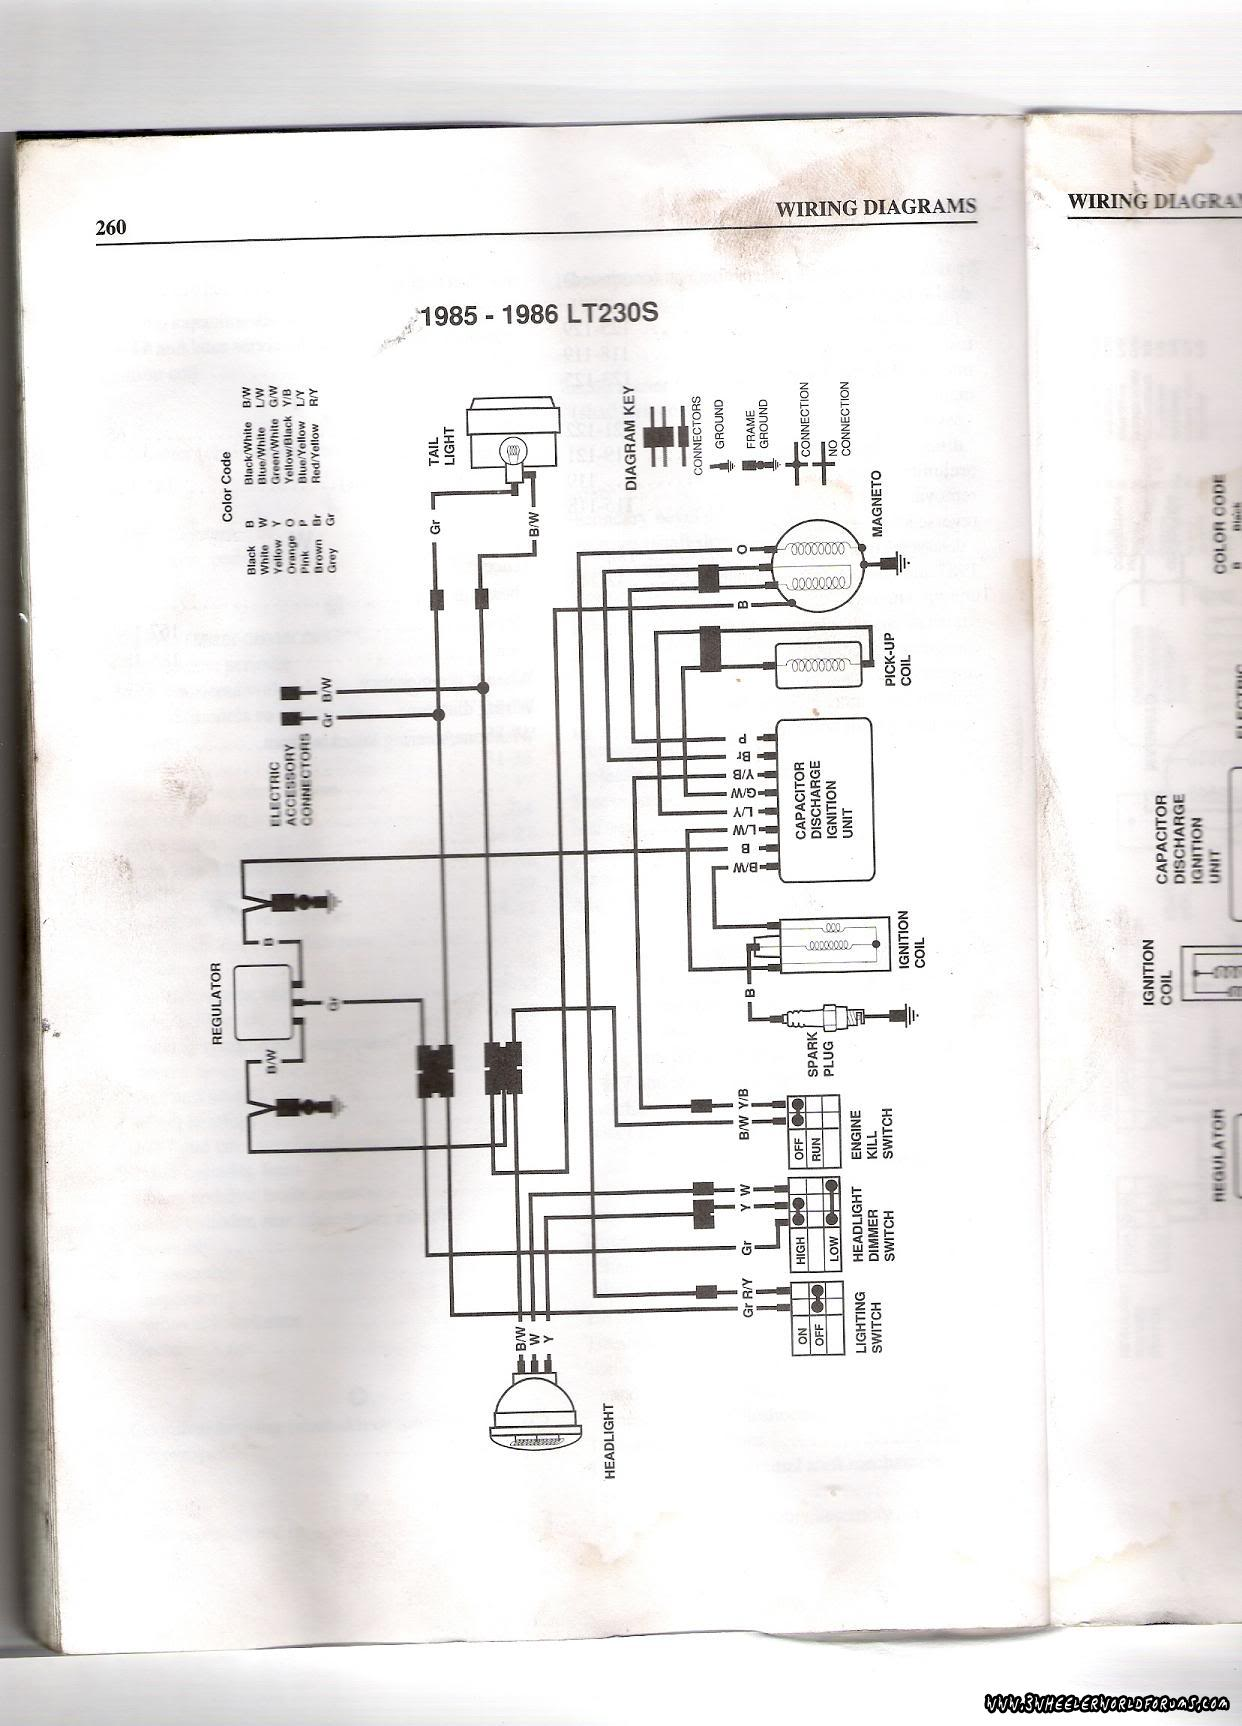 kill switch wiring diagram vagus nerve 85 to 88 suzuki lt230s quadsport help. - page 1261 atvconnection.com atv enthusiast community